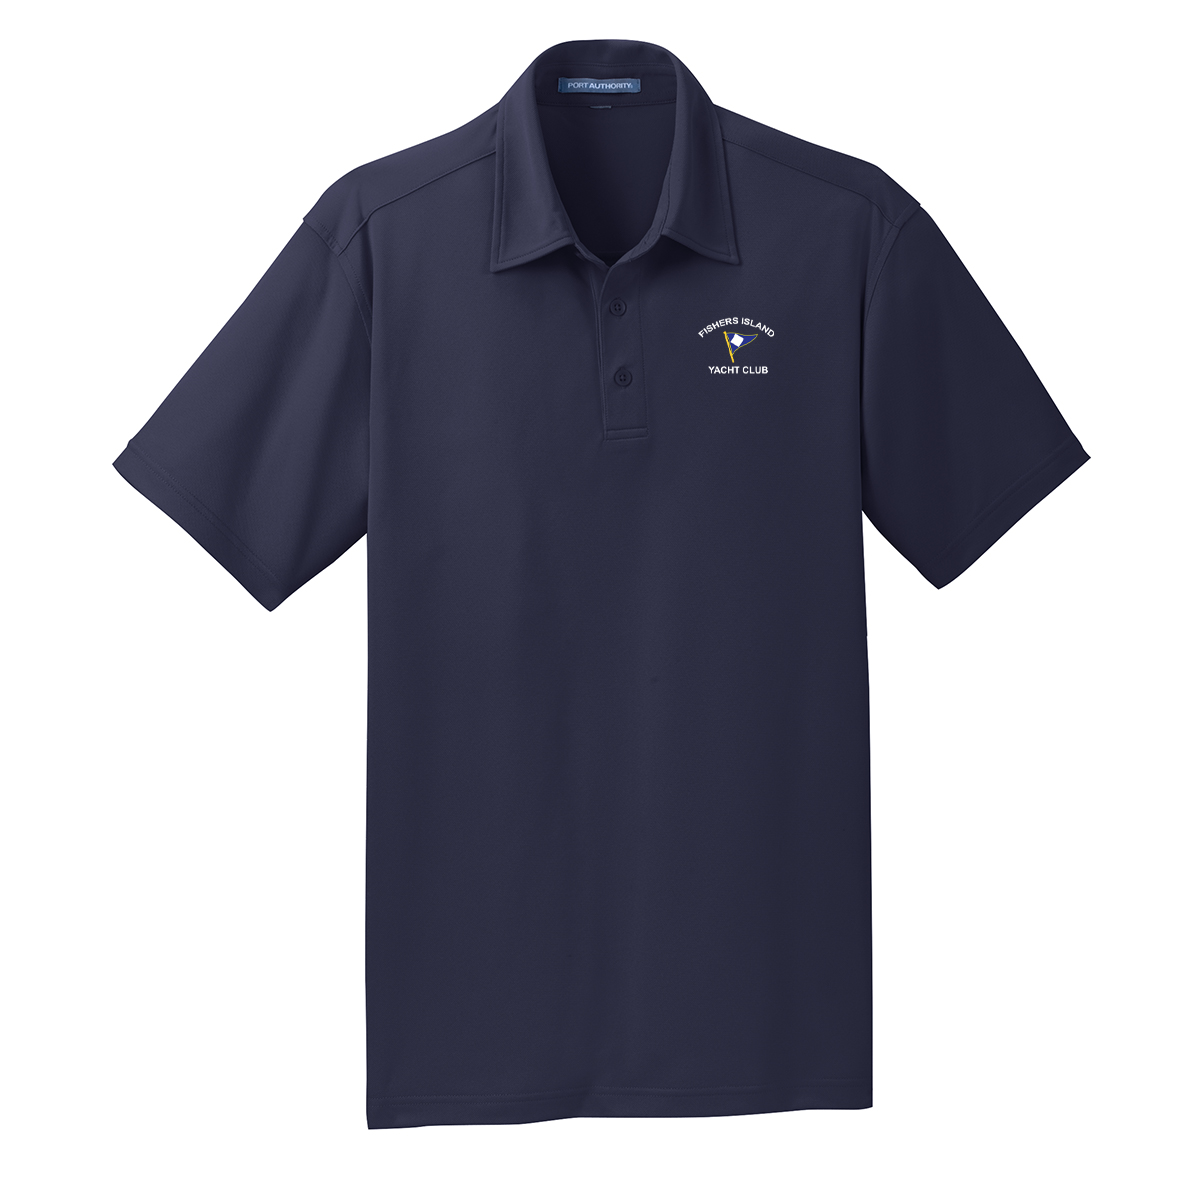 Fishers Island Yacht Club - Men's Tech Polo